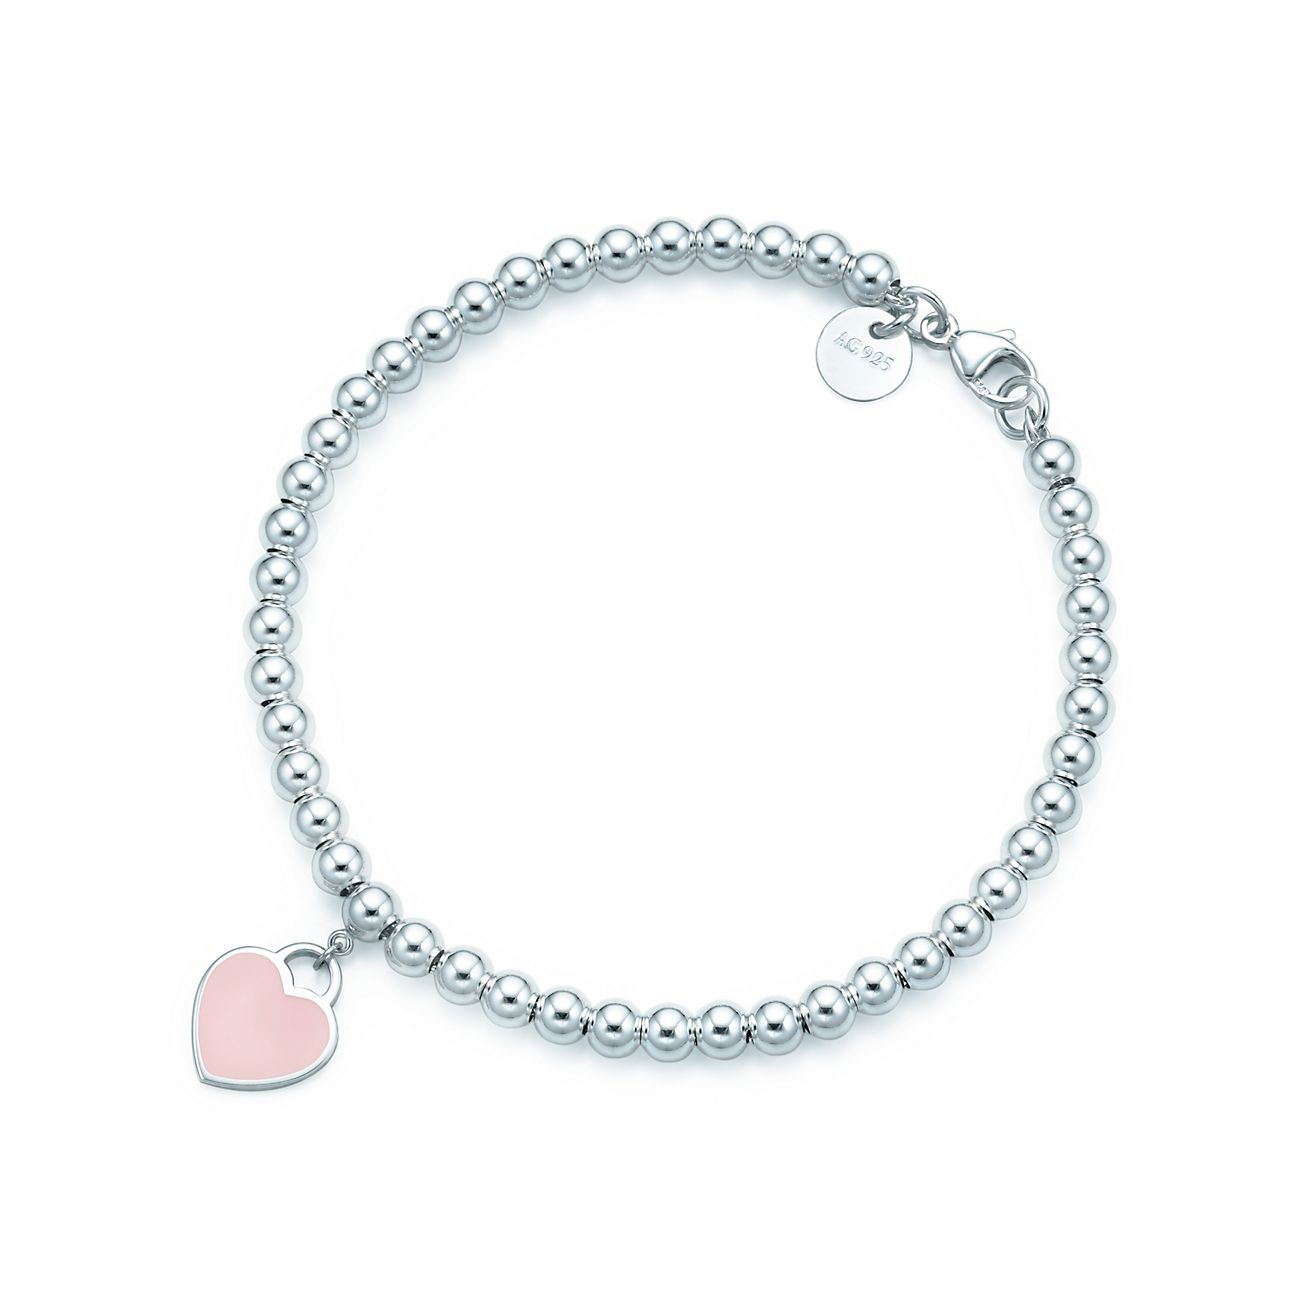 Return To Tiffany Bead Bracelet